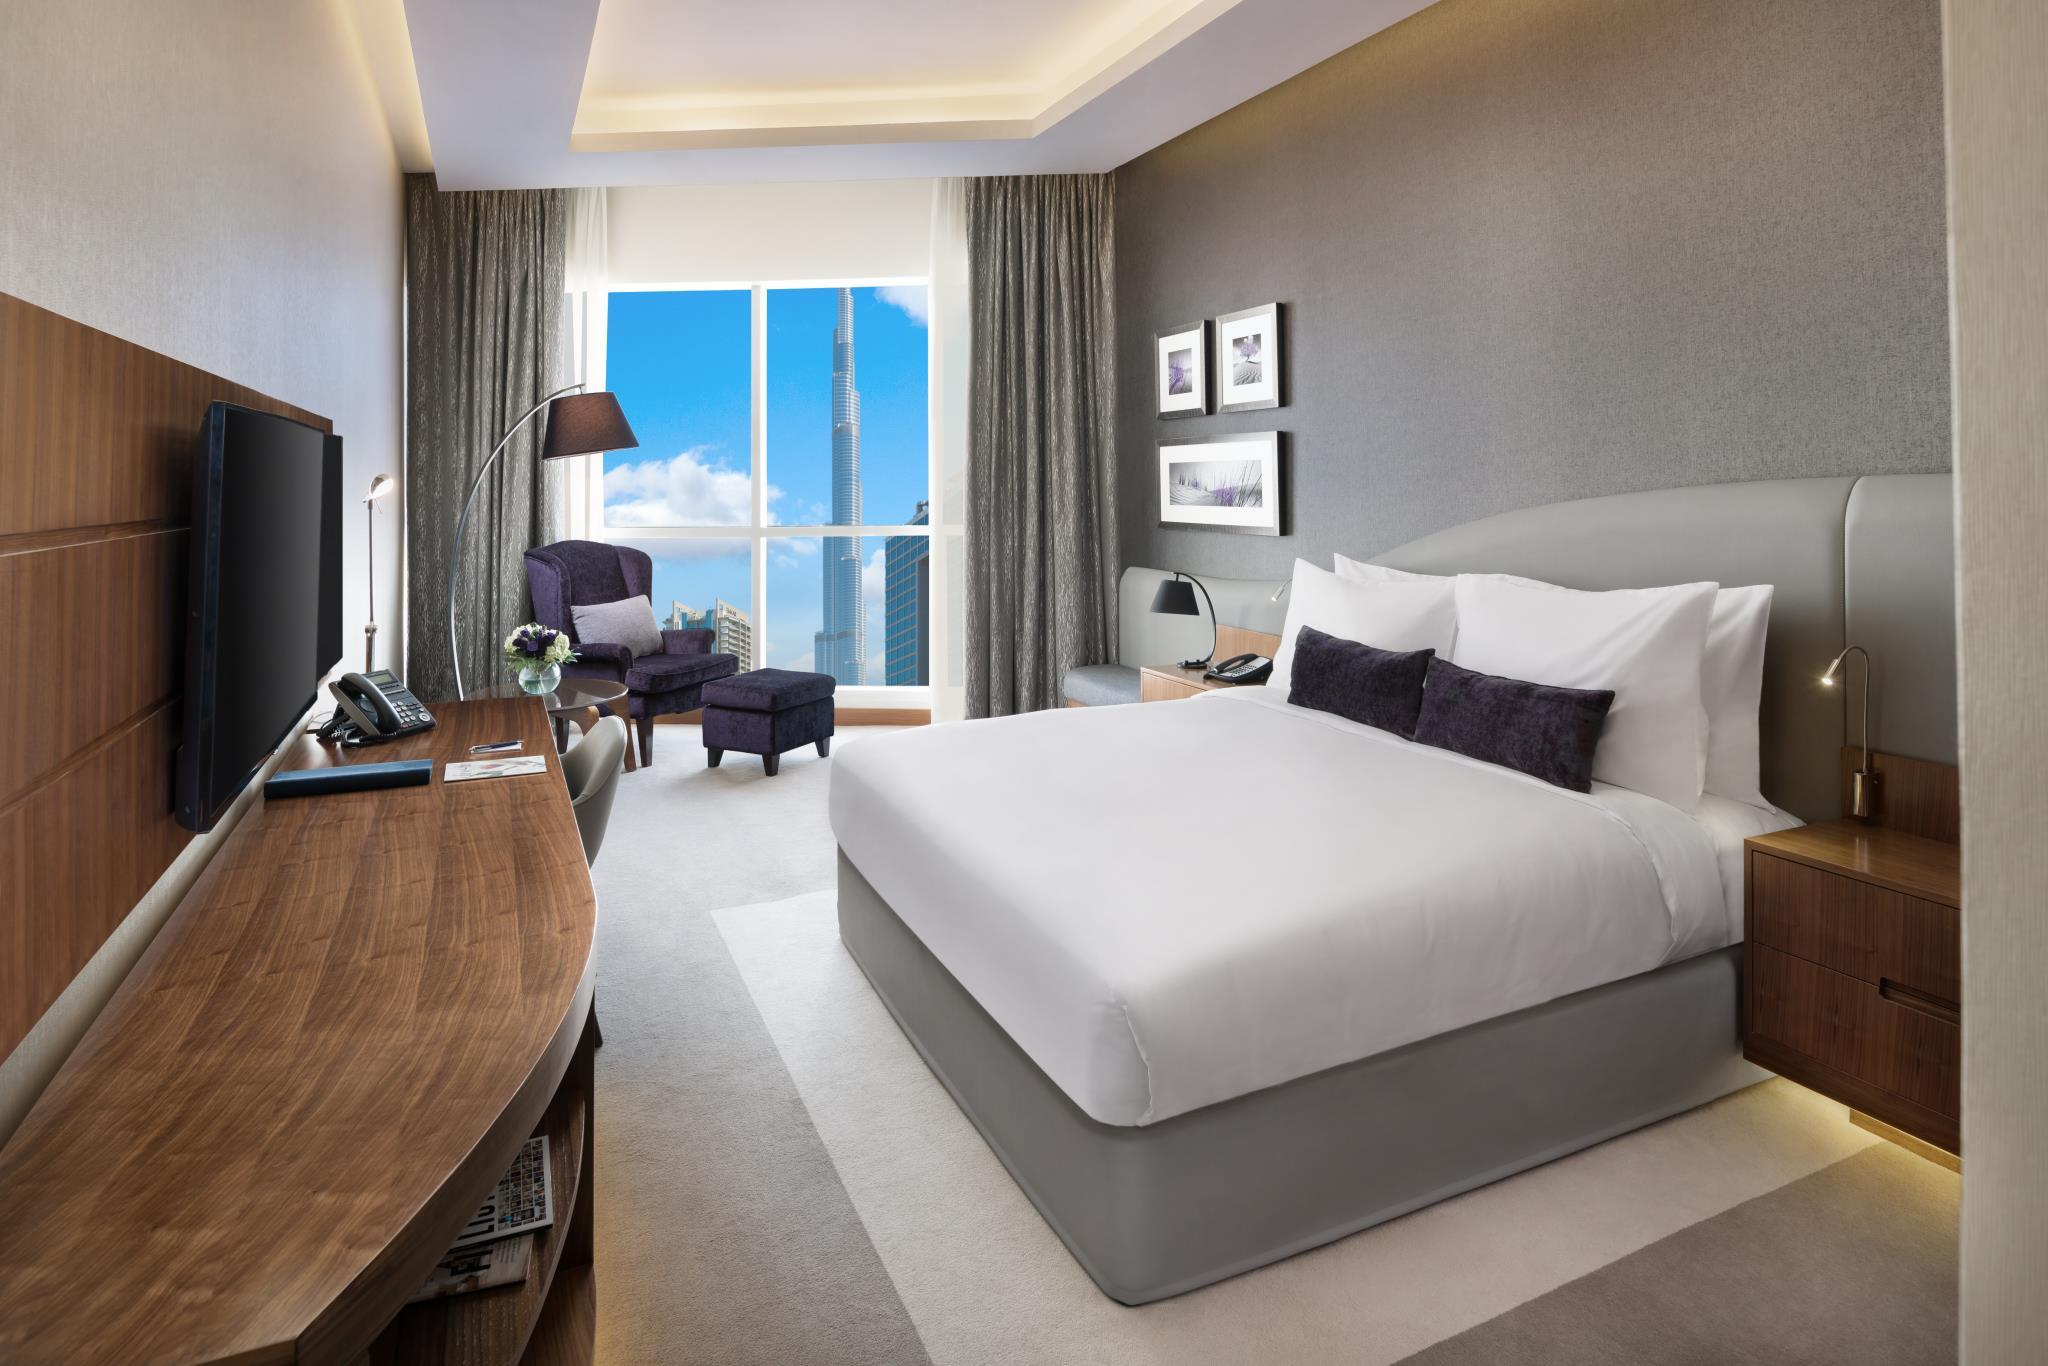 radisson blu The canals - amsterdam, holland find this pin and more on netherlands: blu destinations by radissonblu amsterdam, netherlands one search for hotel and home bookings a meta search website for laterooms, and allrooms.